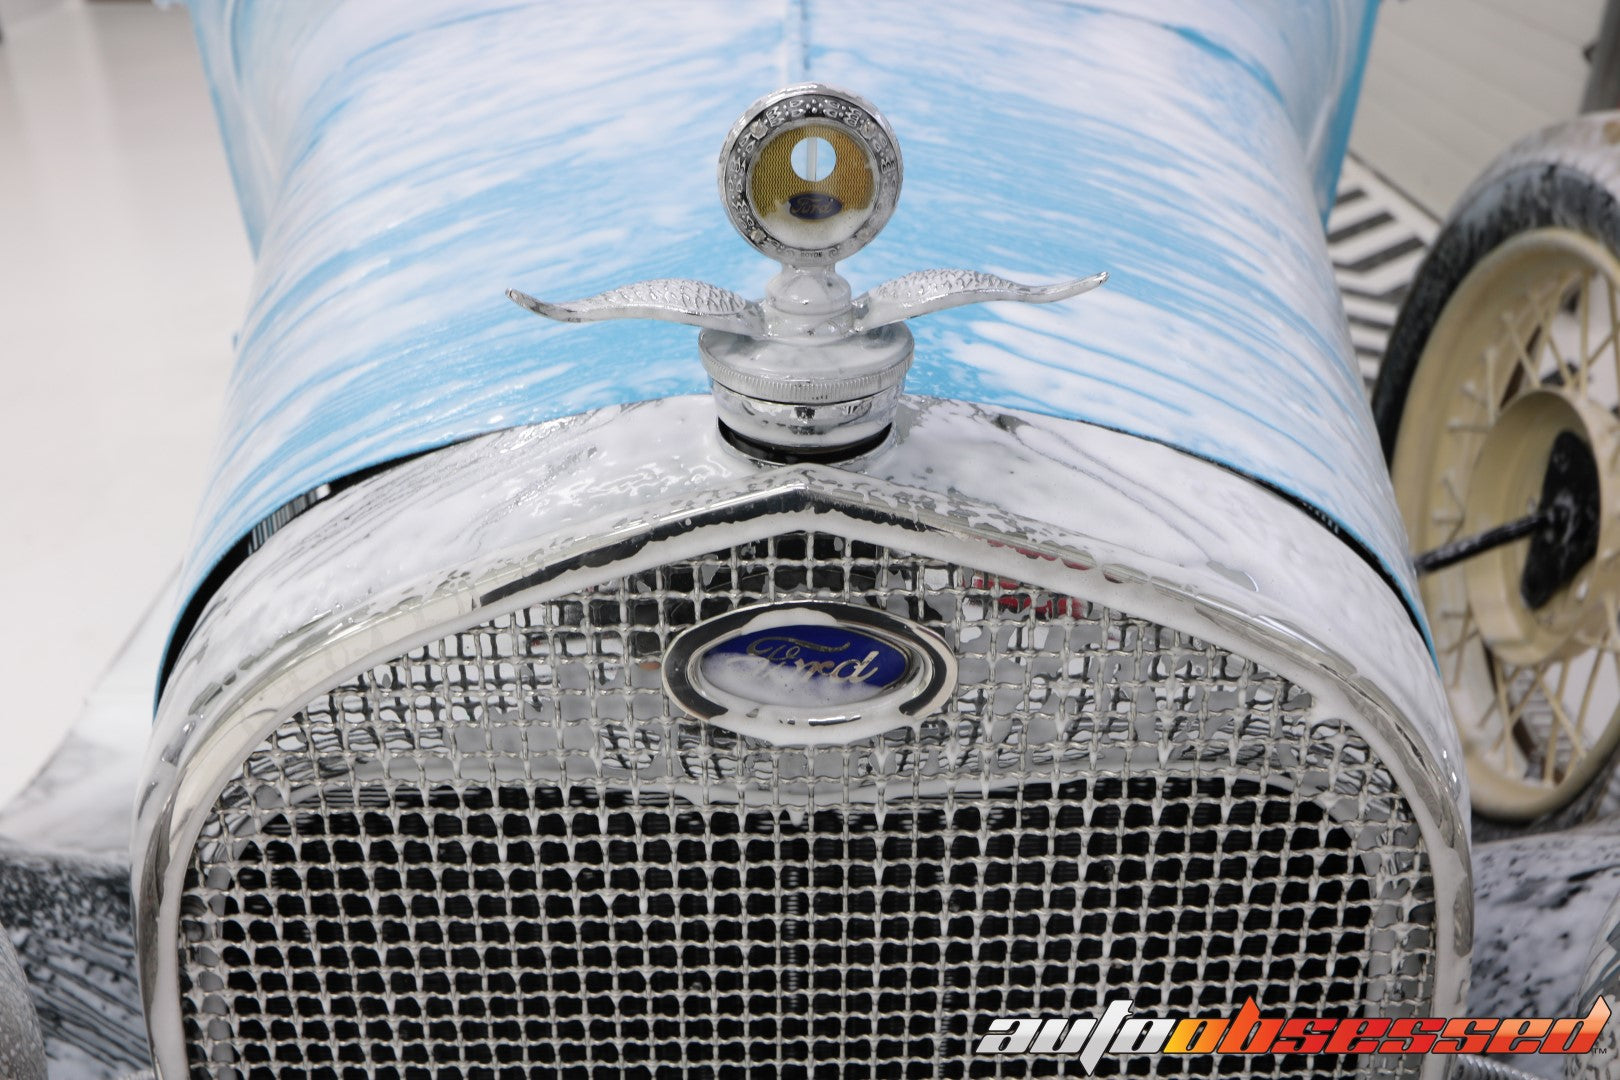 1928 Ford Model A Decontamination Car Wash - Auto Obsessed